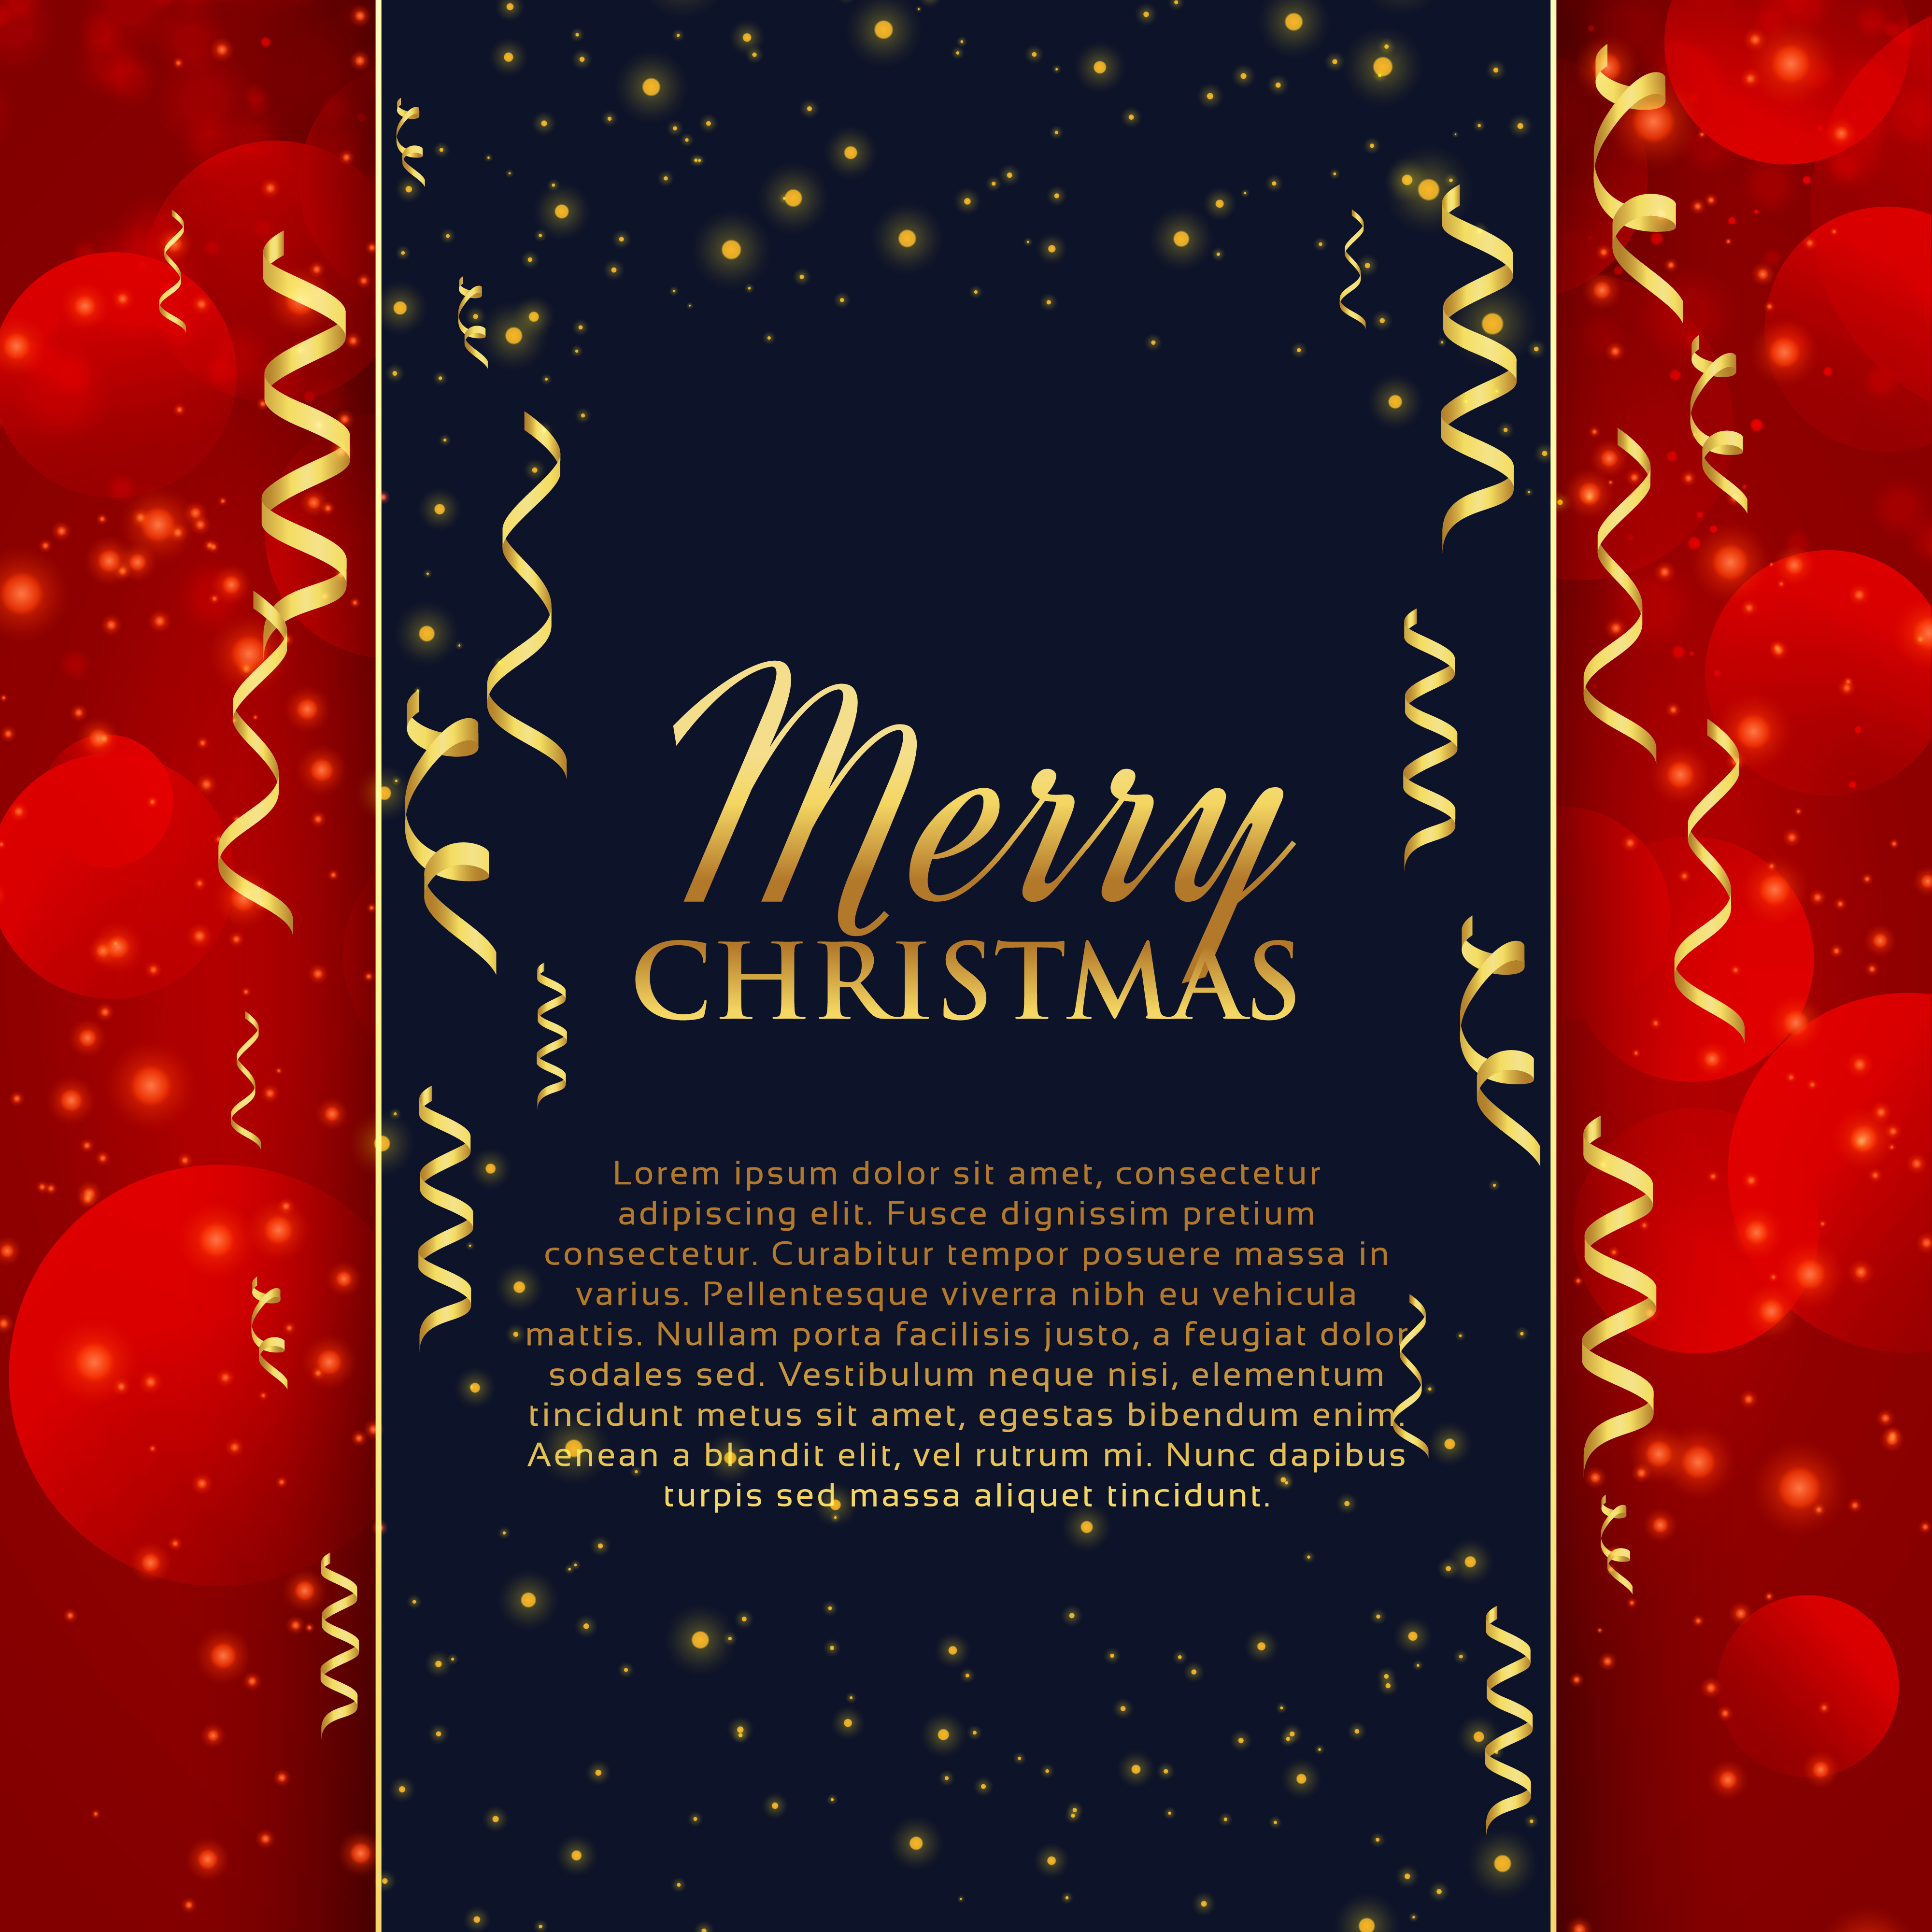 Merry Christmas And Happy New Year 2020 Wishes Images ...